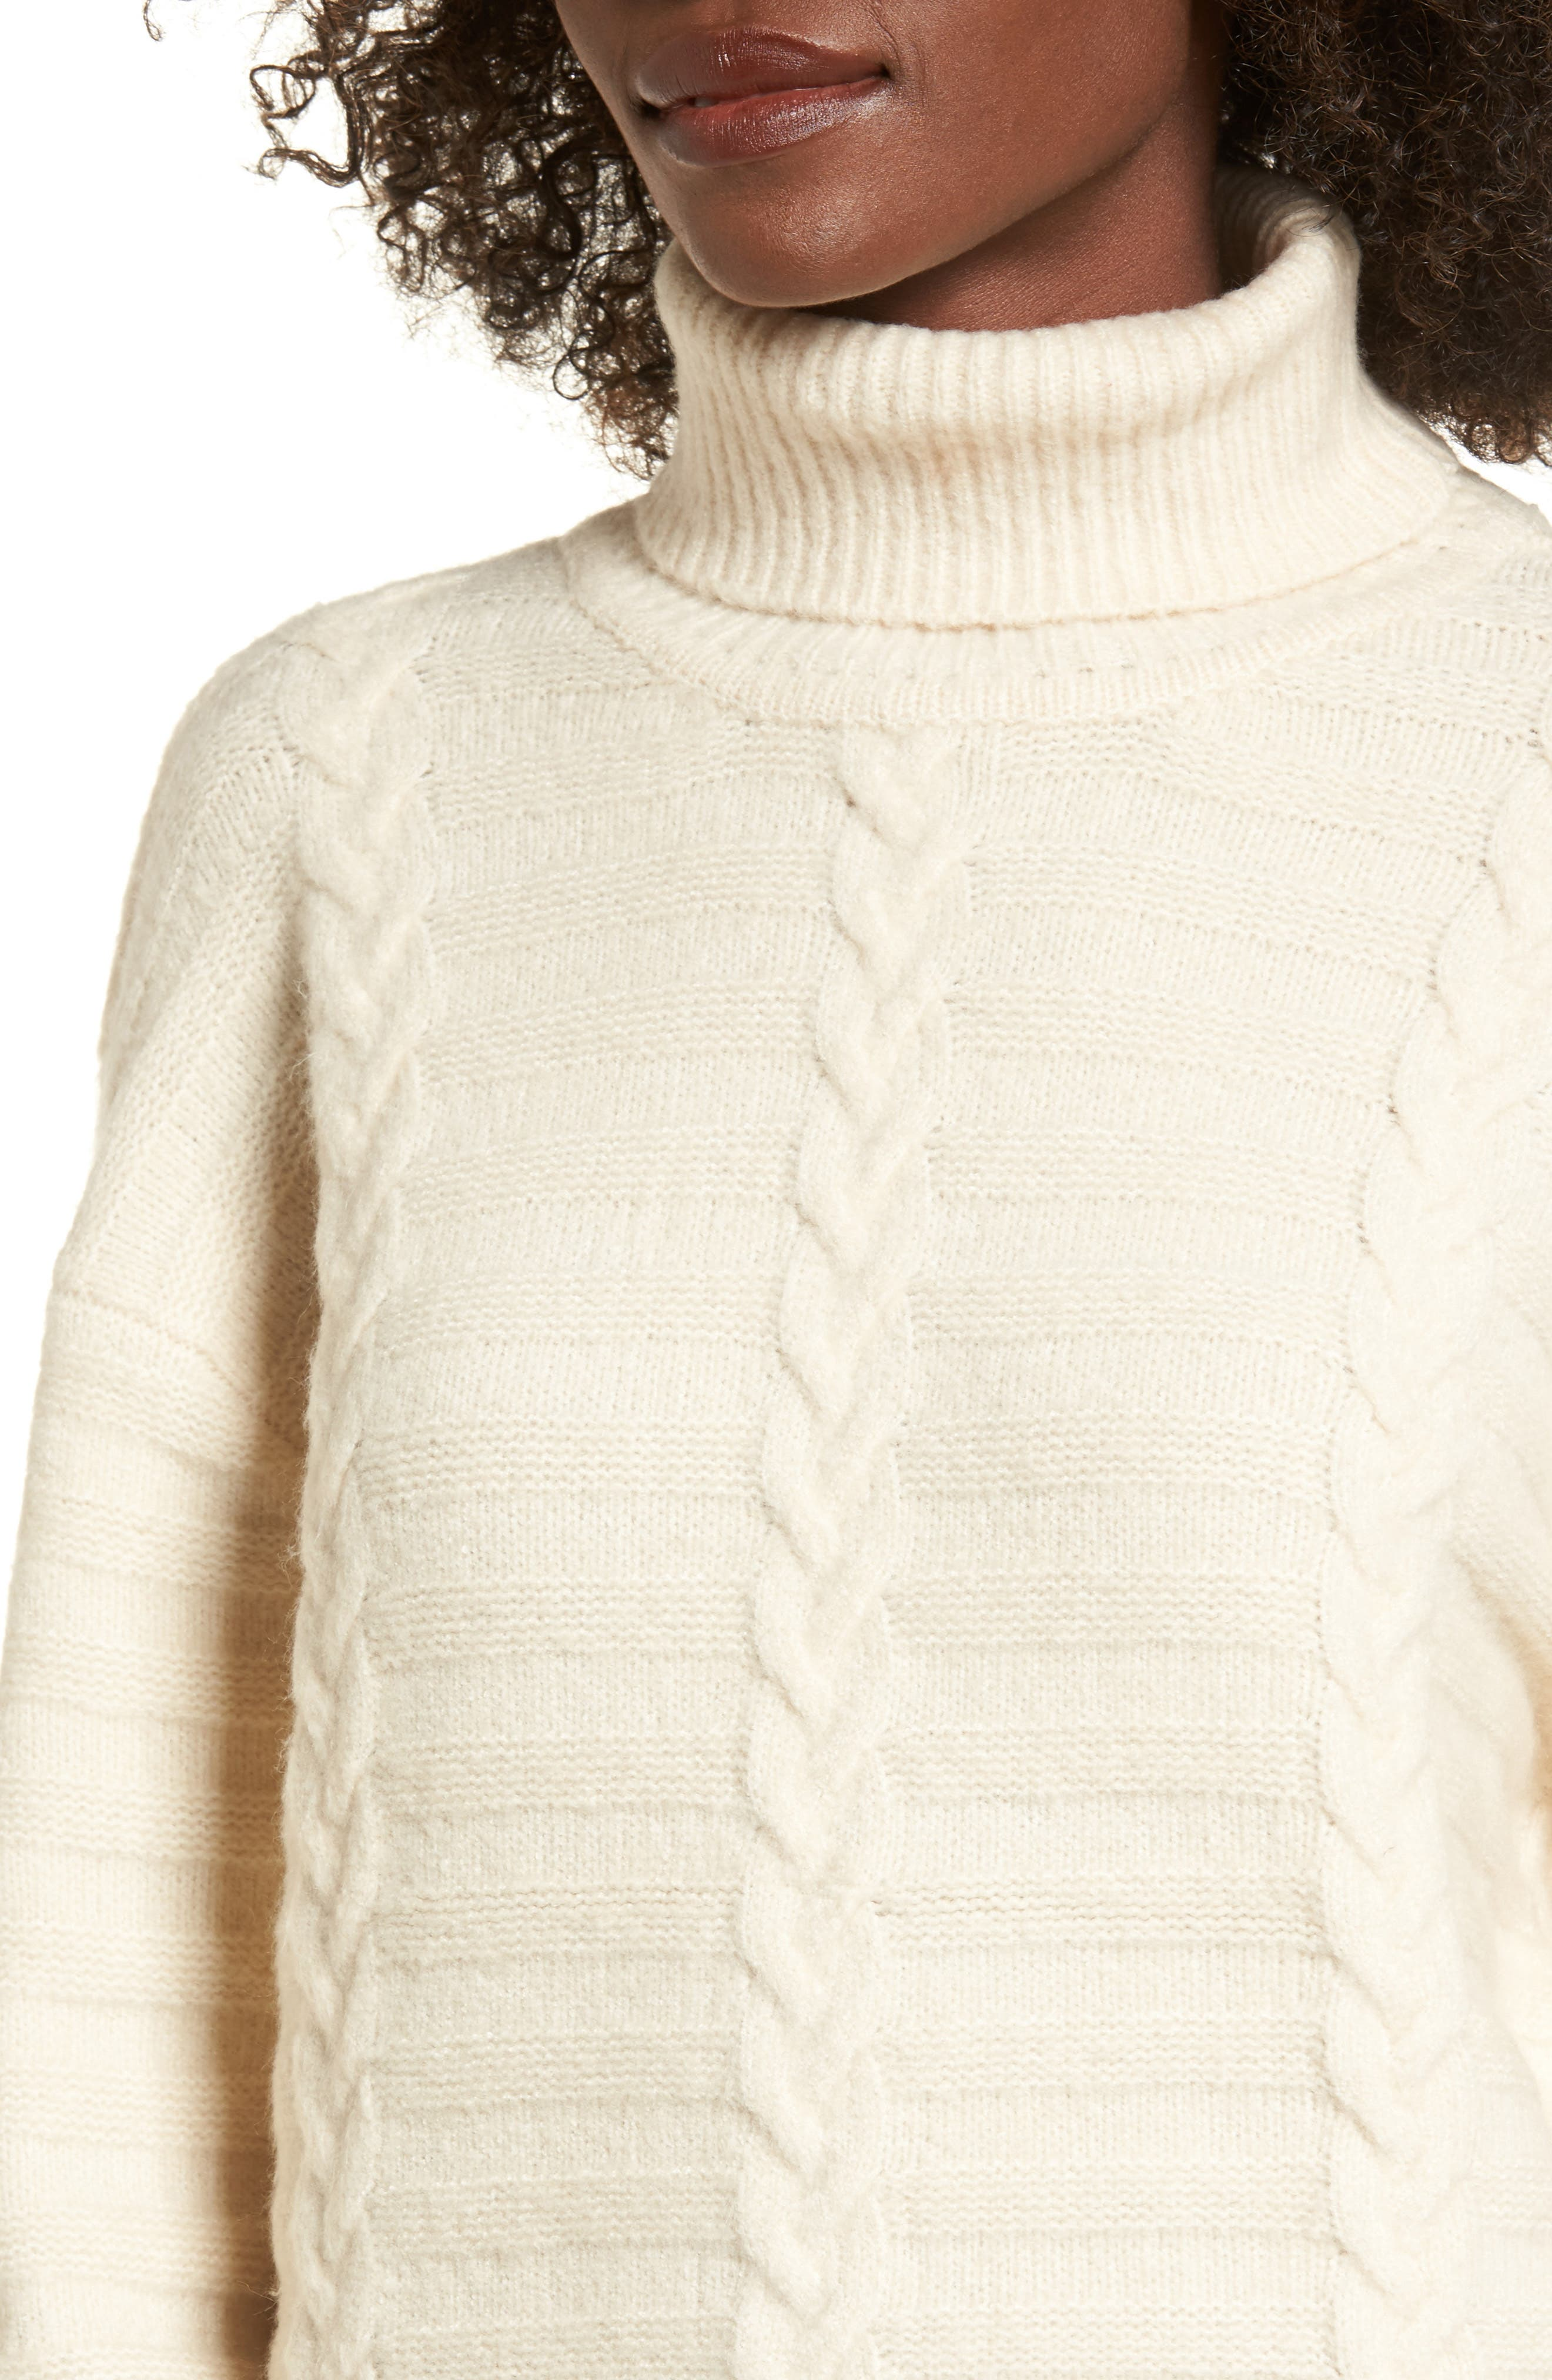 Turtleneck Sweater,                             Alternate thumbnail 4, color,                             900